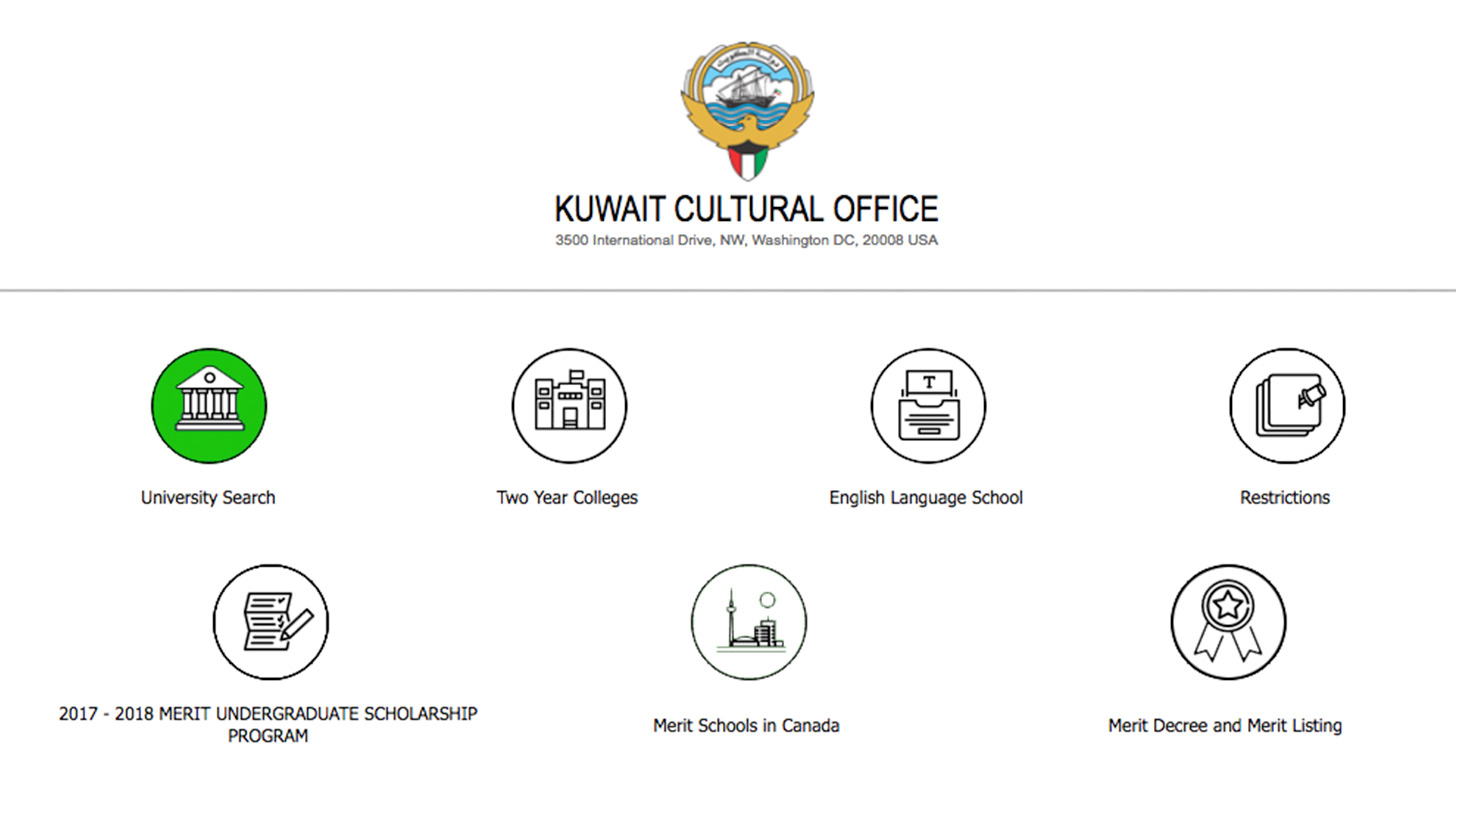 Welcome Dc | Kuwait Cultural Offices - Washington